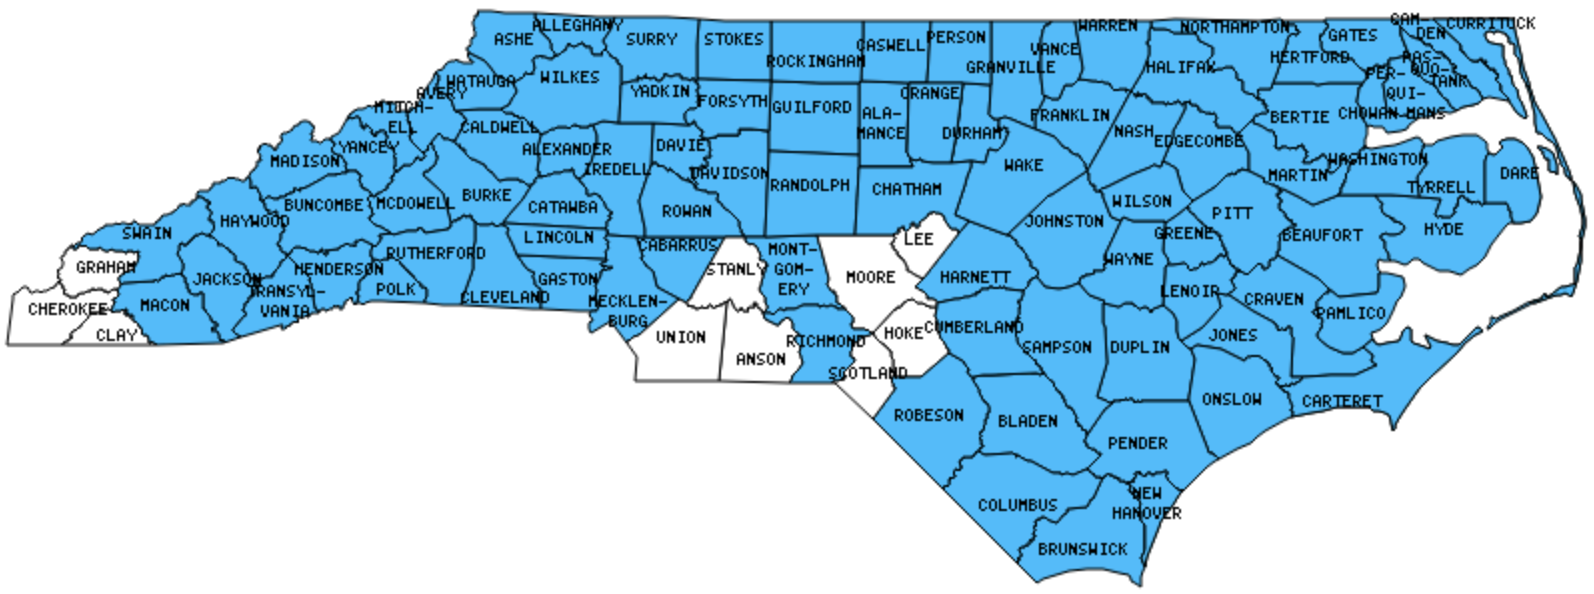 North Carolina Counties Visited (with map, highpoint, capitol and